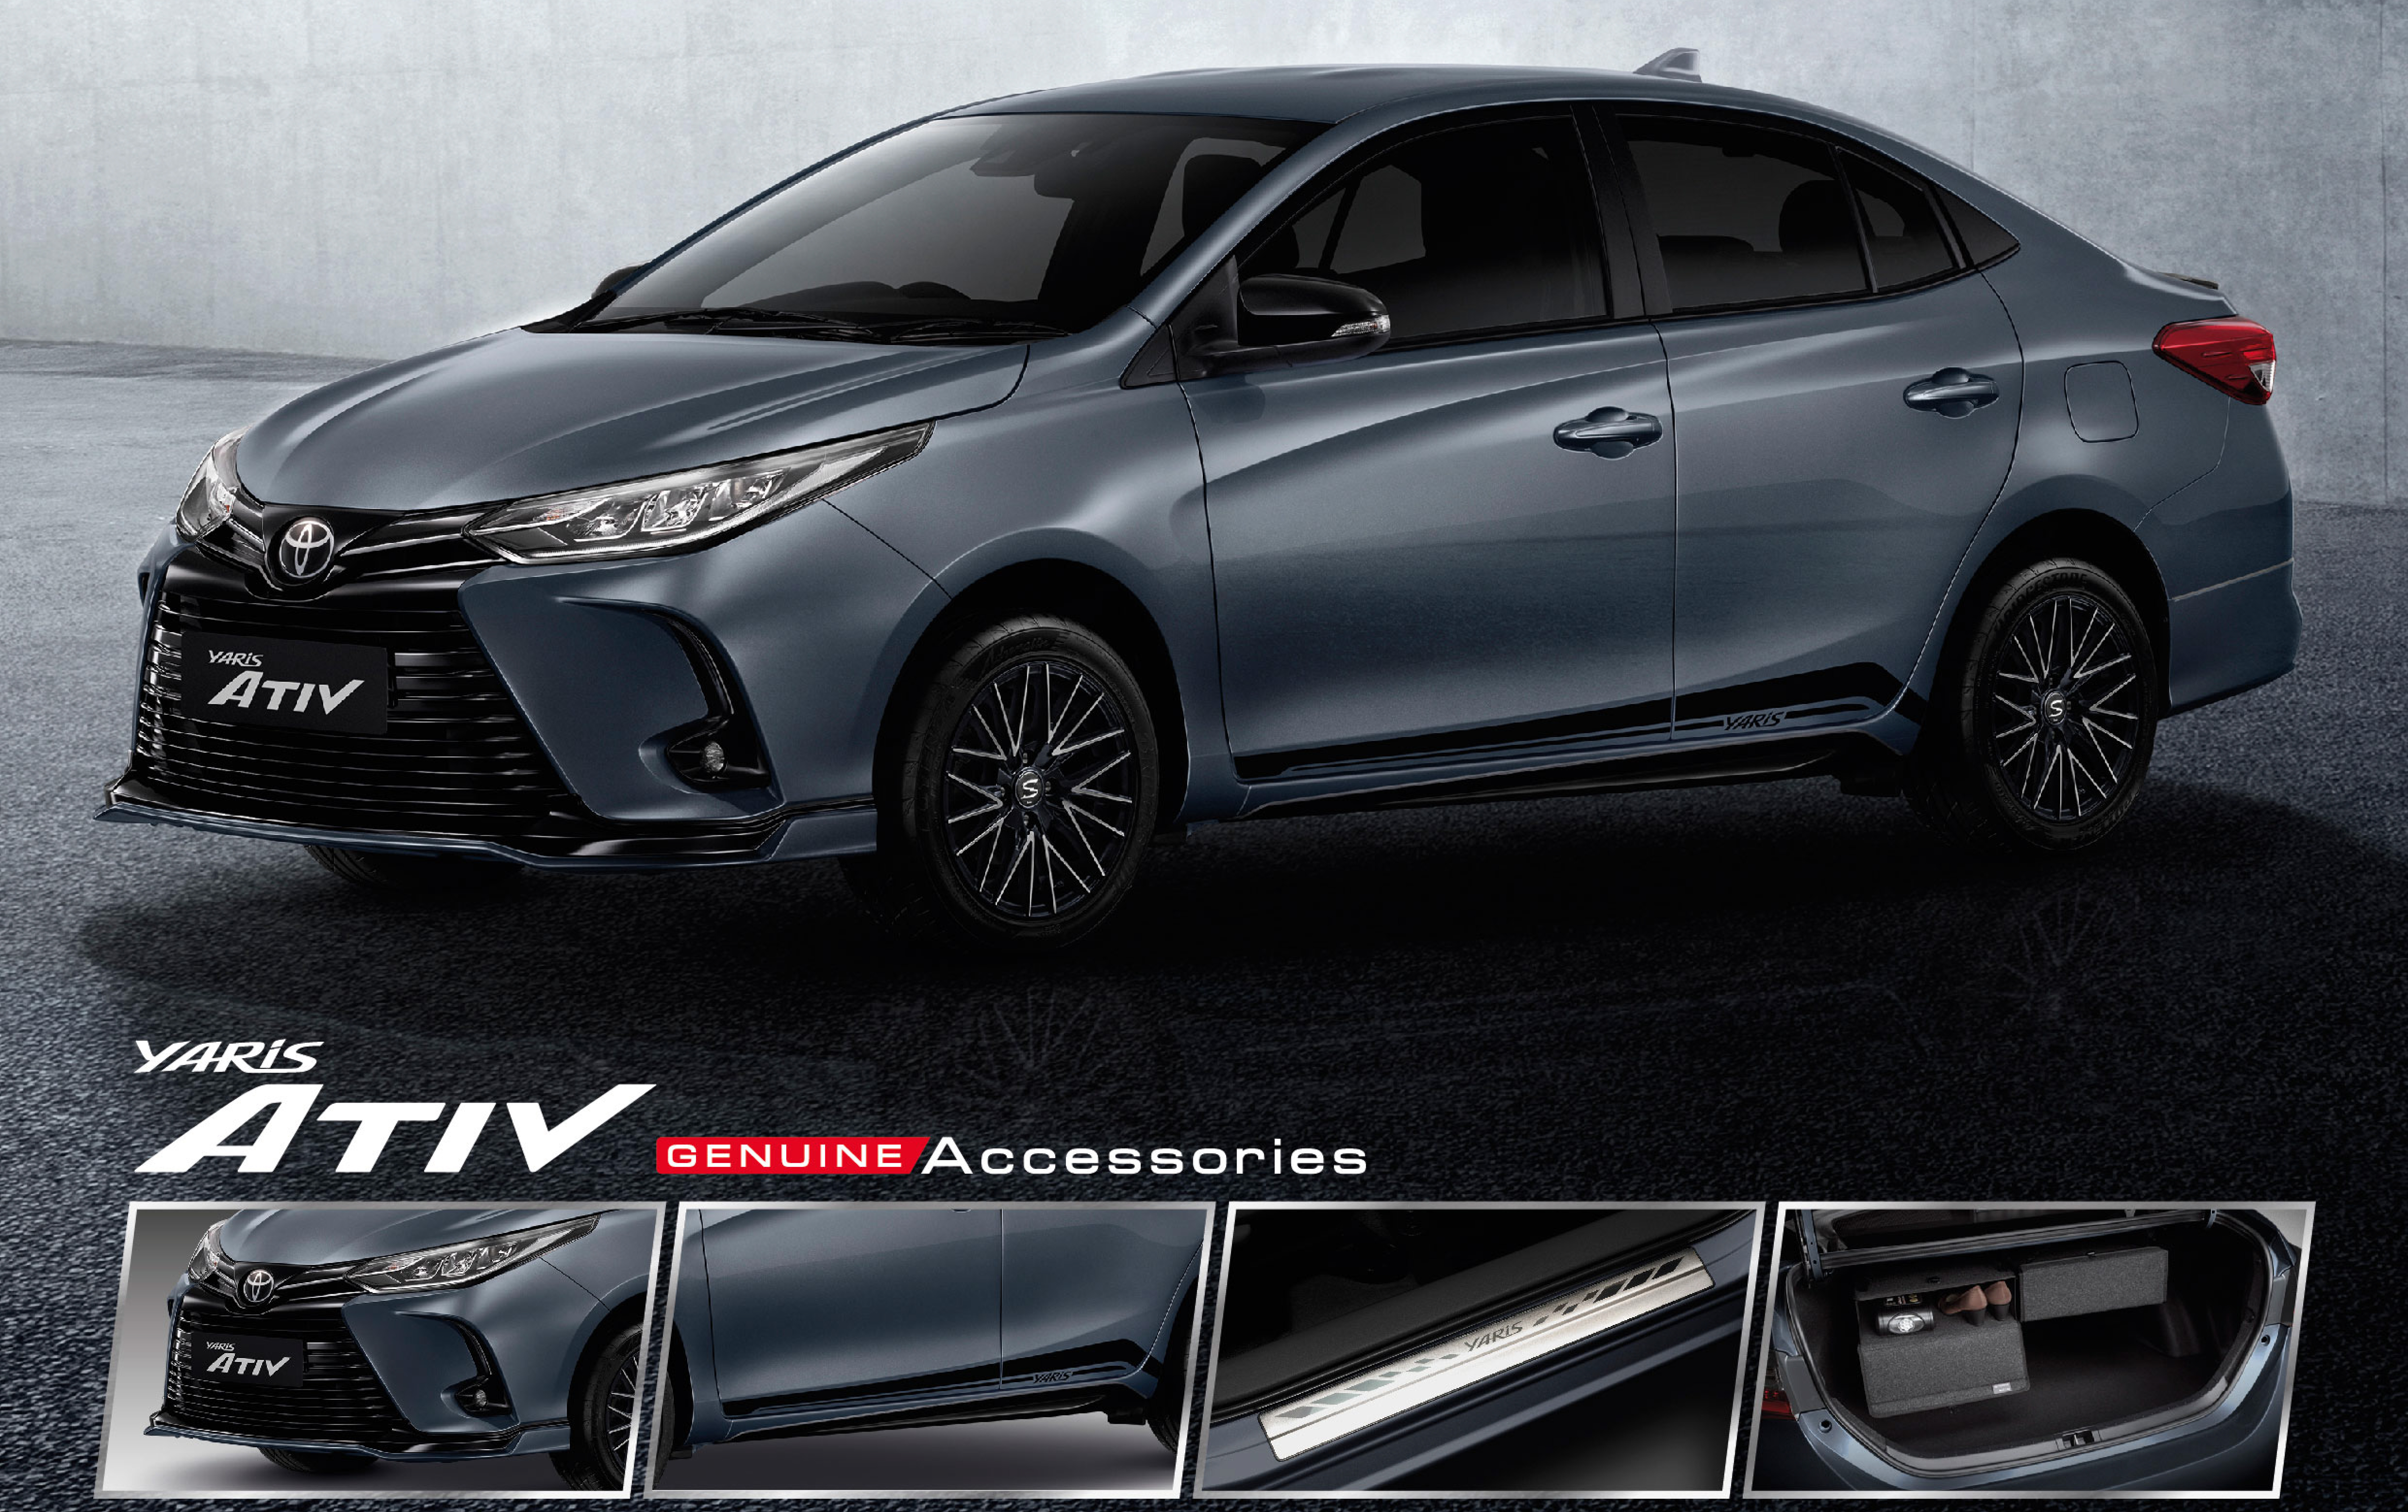 2020 Toyota Yaris and Yaris Ativ facelift launched in Thailand – now with AEB and new styling; from RM72k Image #1163689